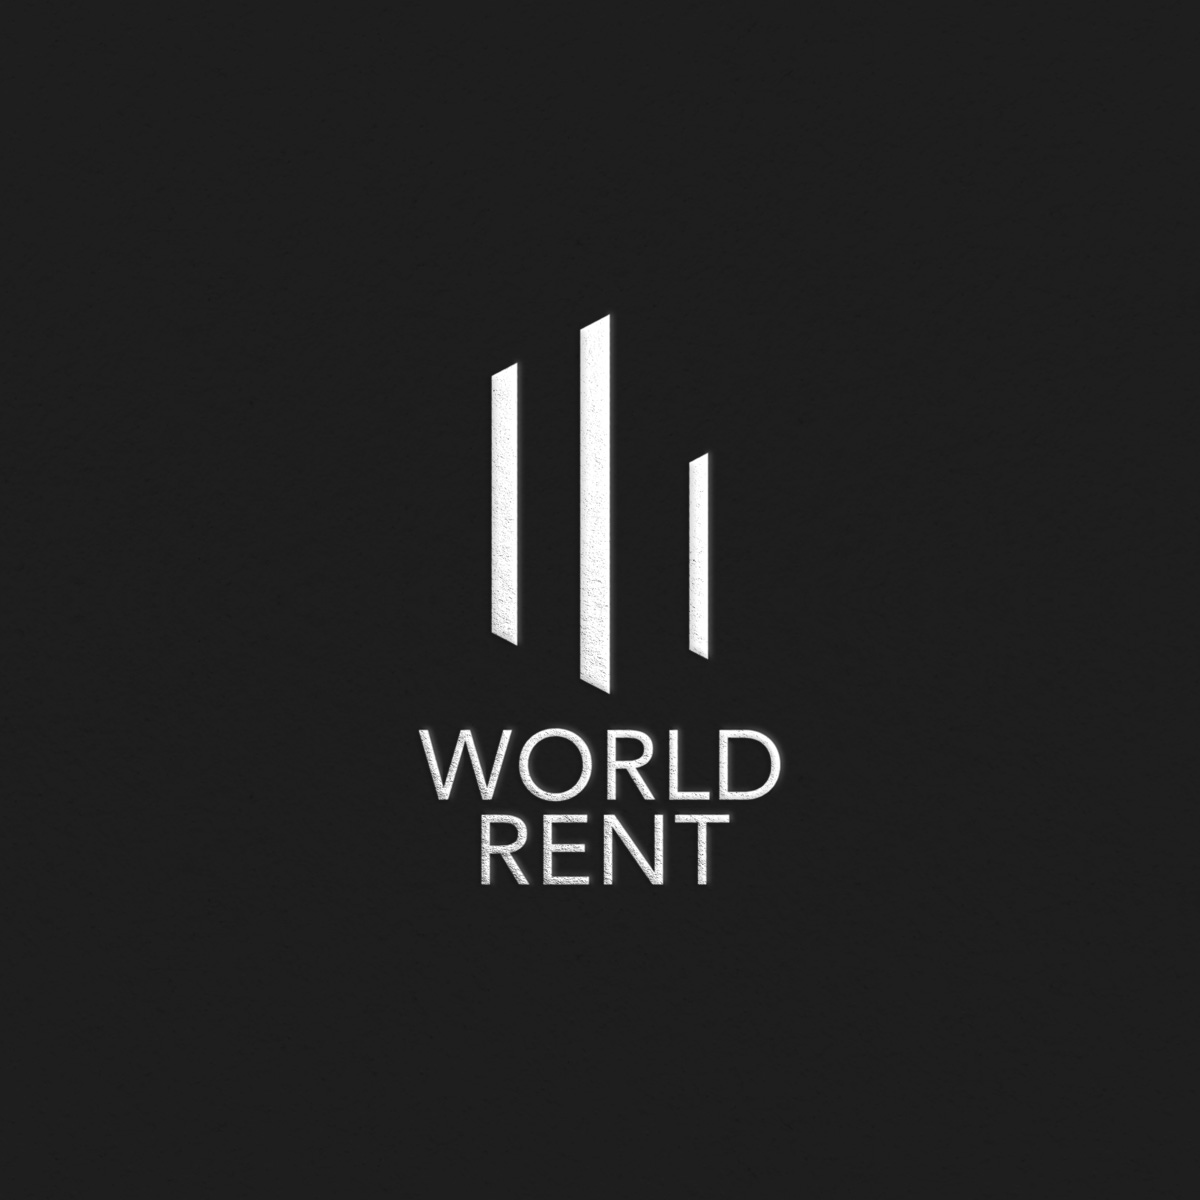 World rent company - constant design